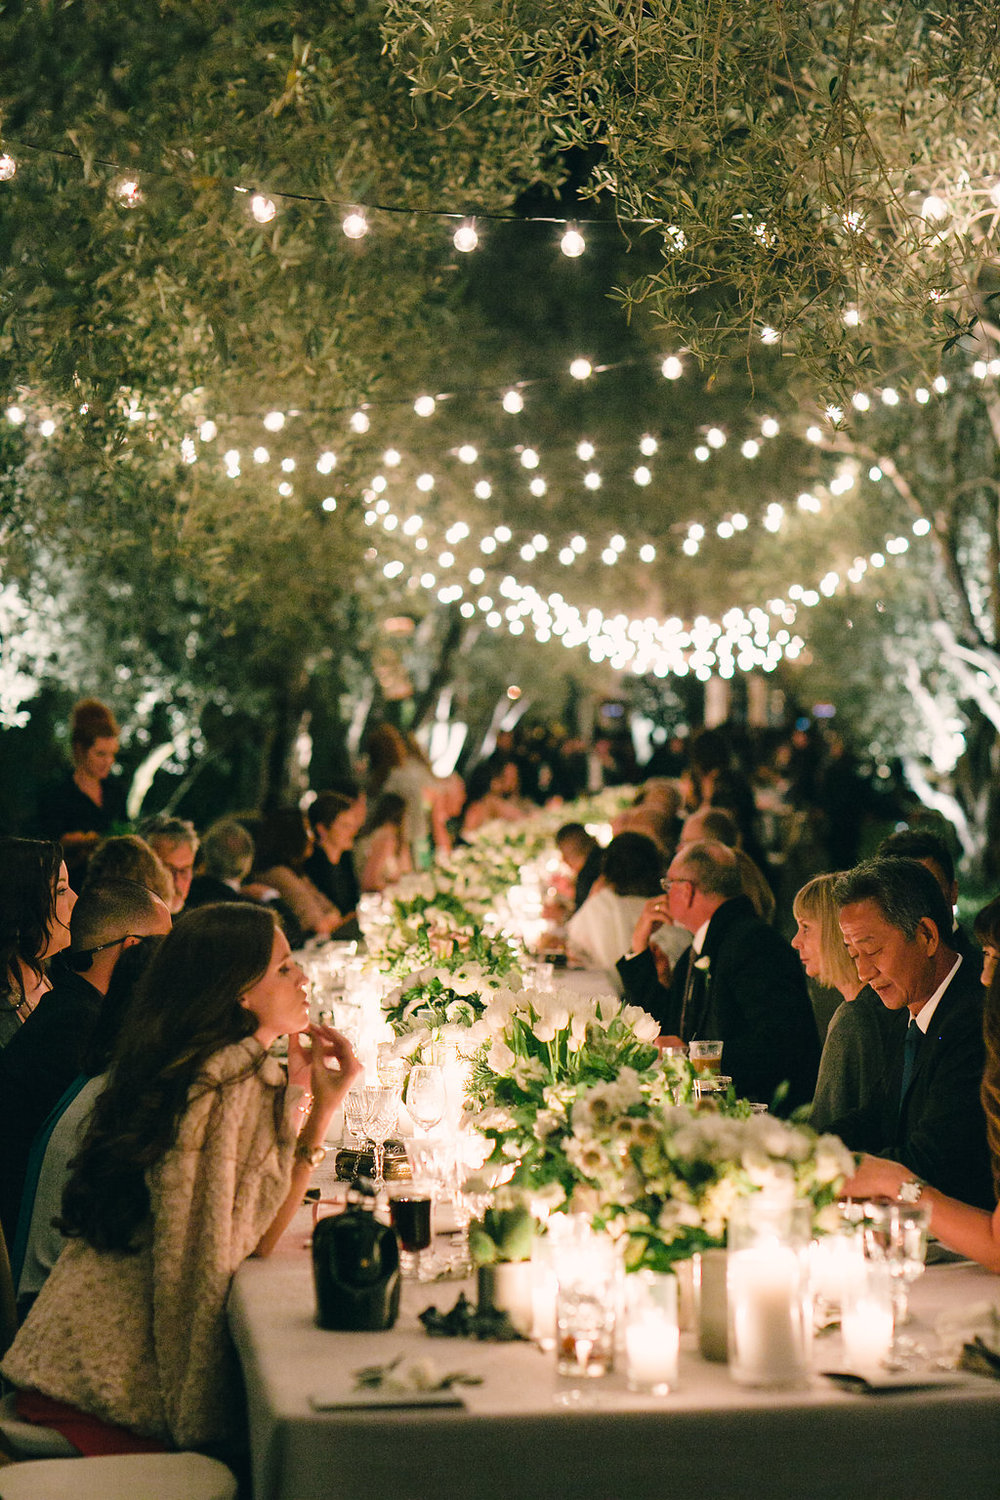 santabarbarawedding.com | Photo: Michelle Beller | Chic Black and White Wedding Ideas